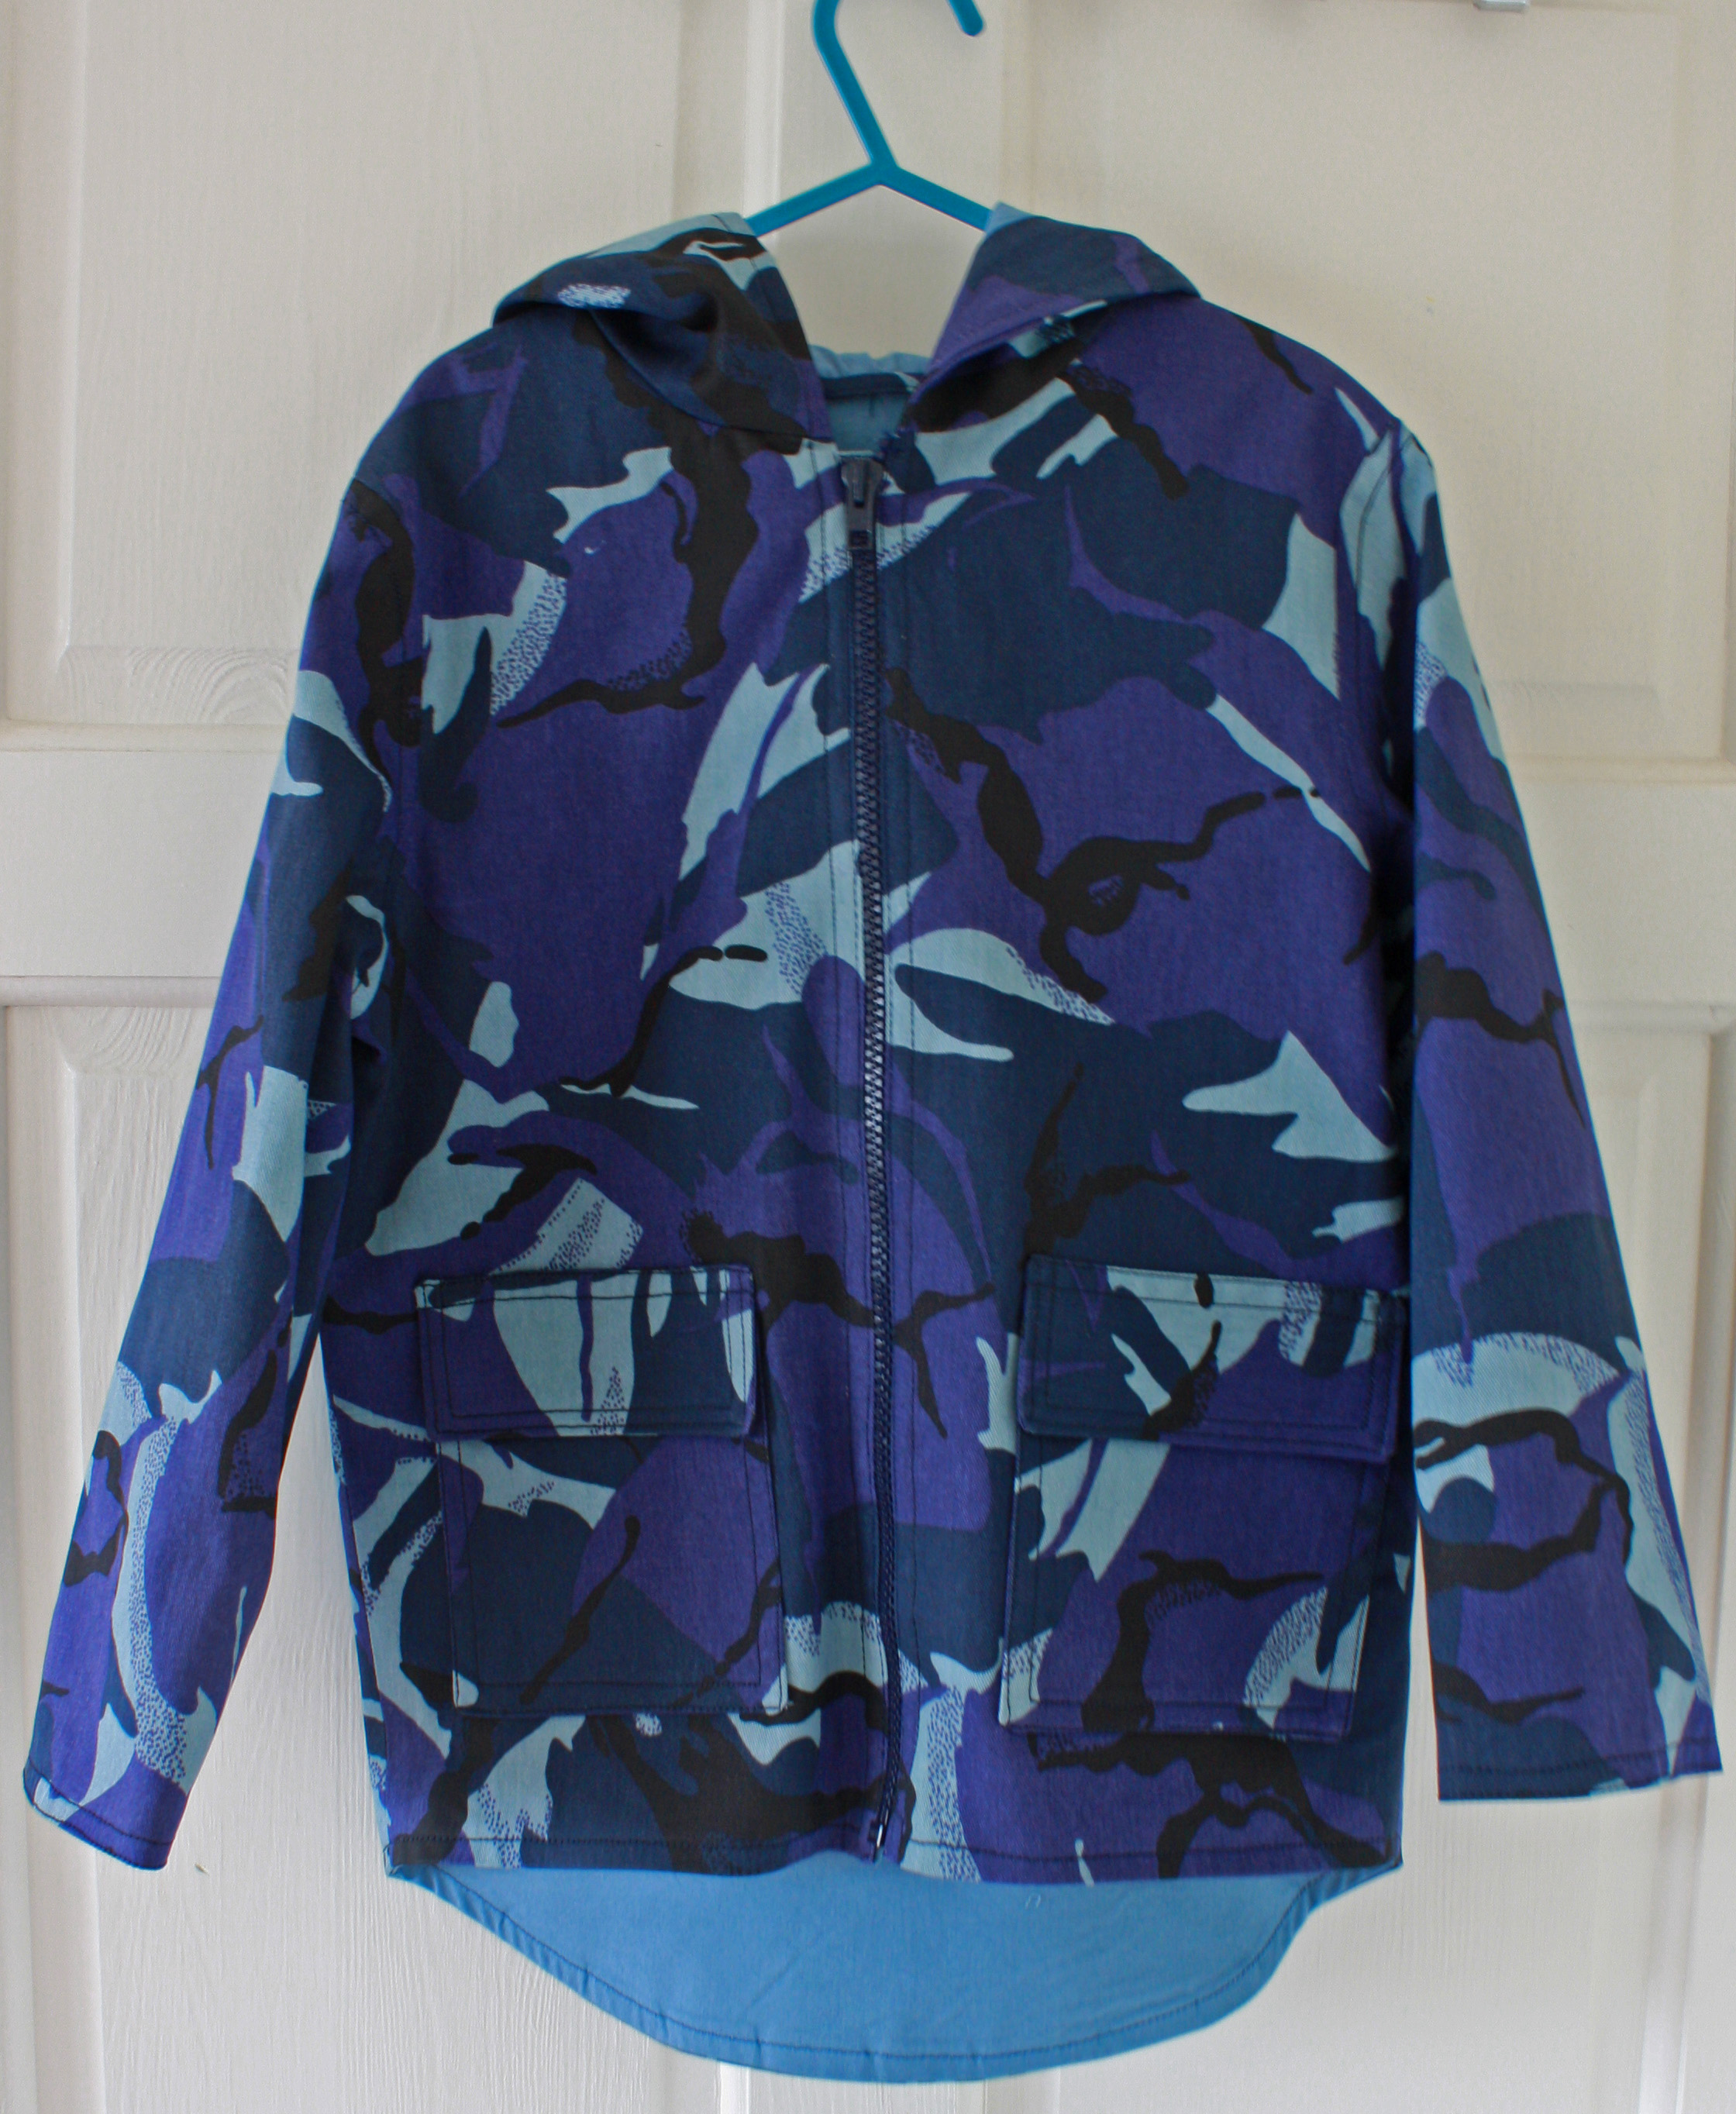 Spring Showers Jacket 1